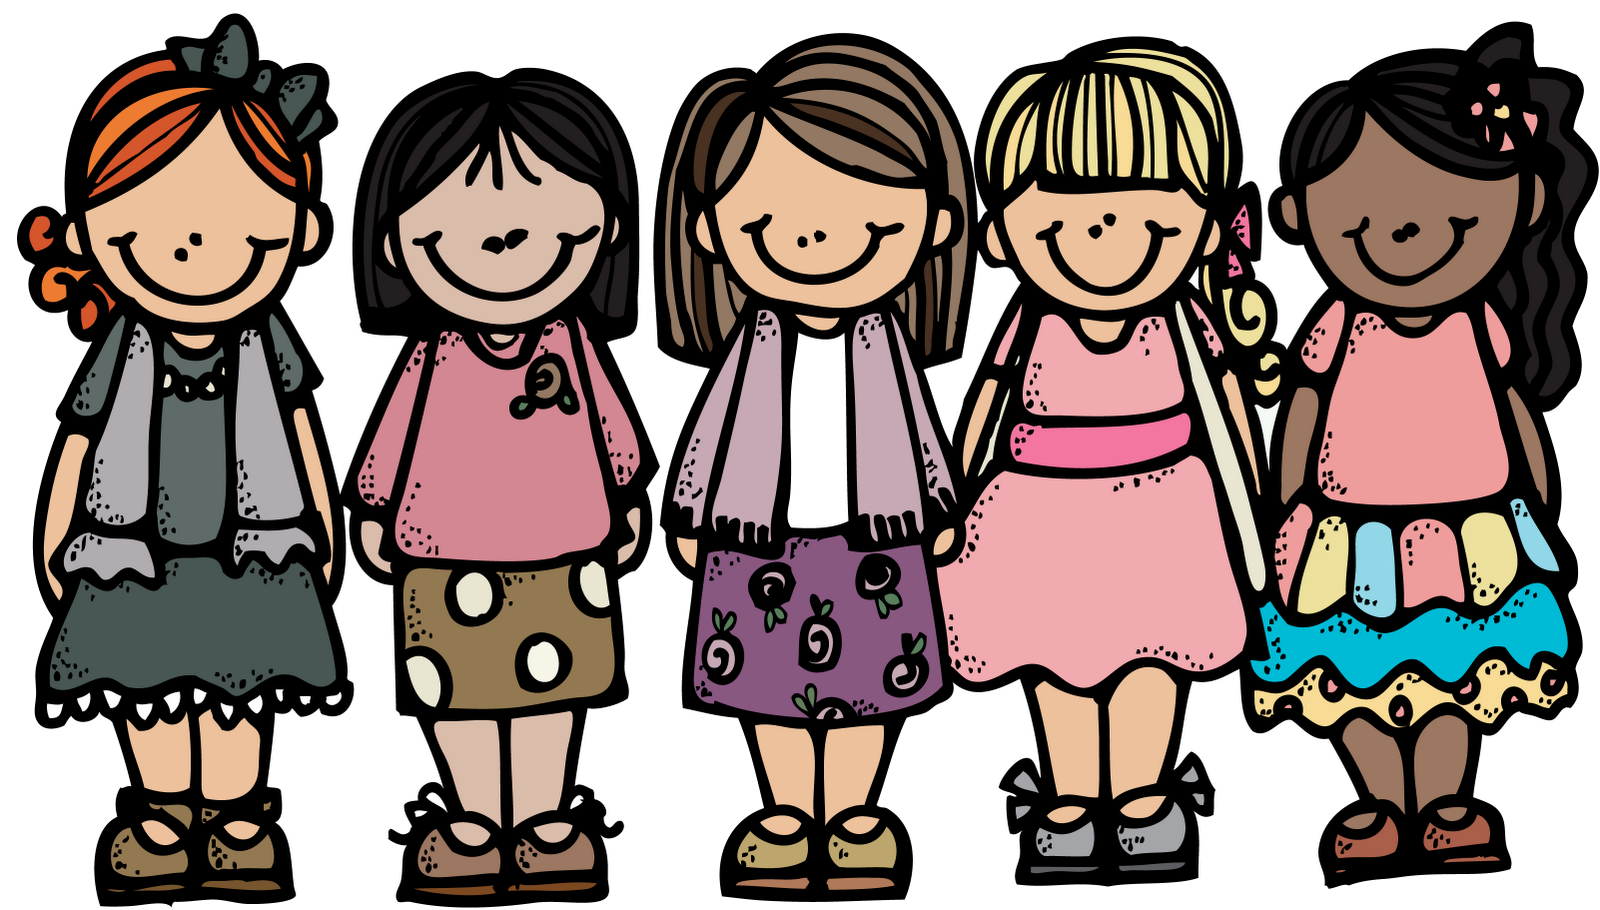 Sister clipart activity day. Free melonheadz cliparts download